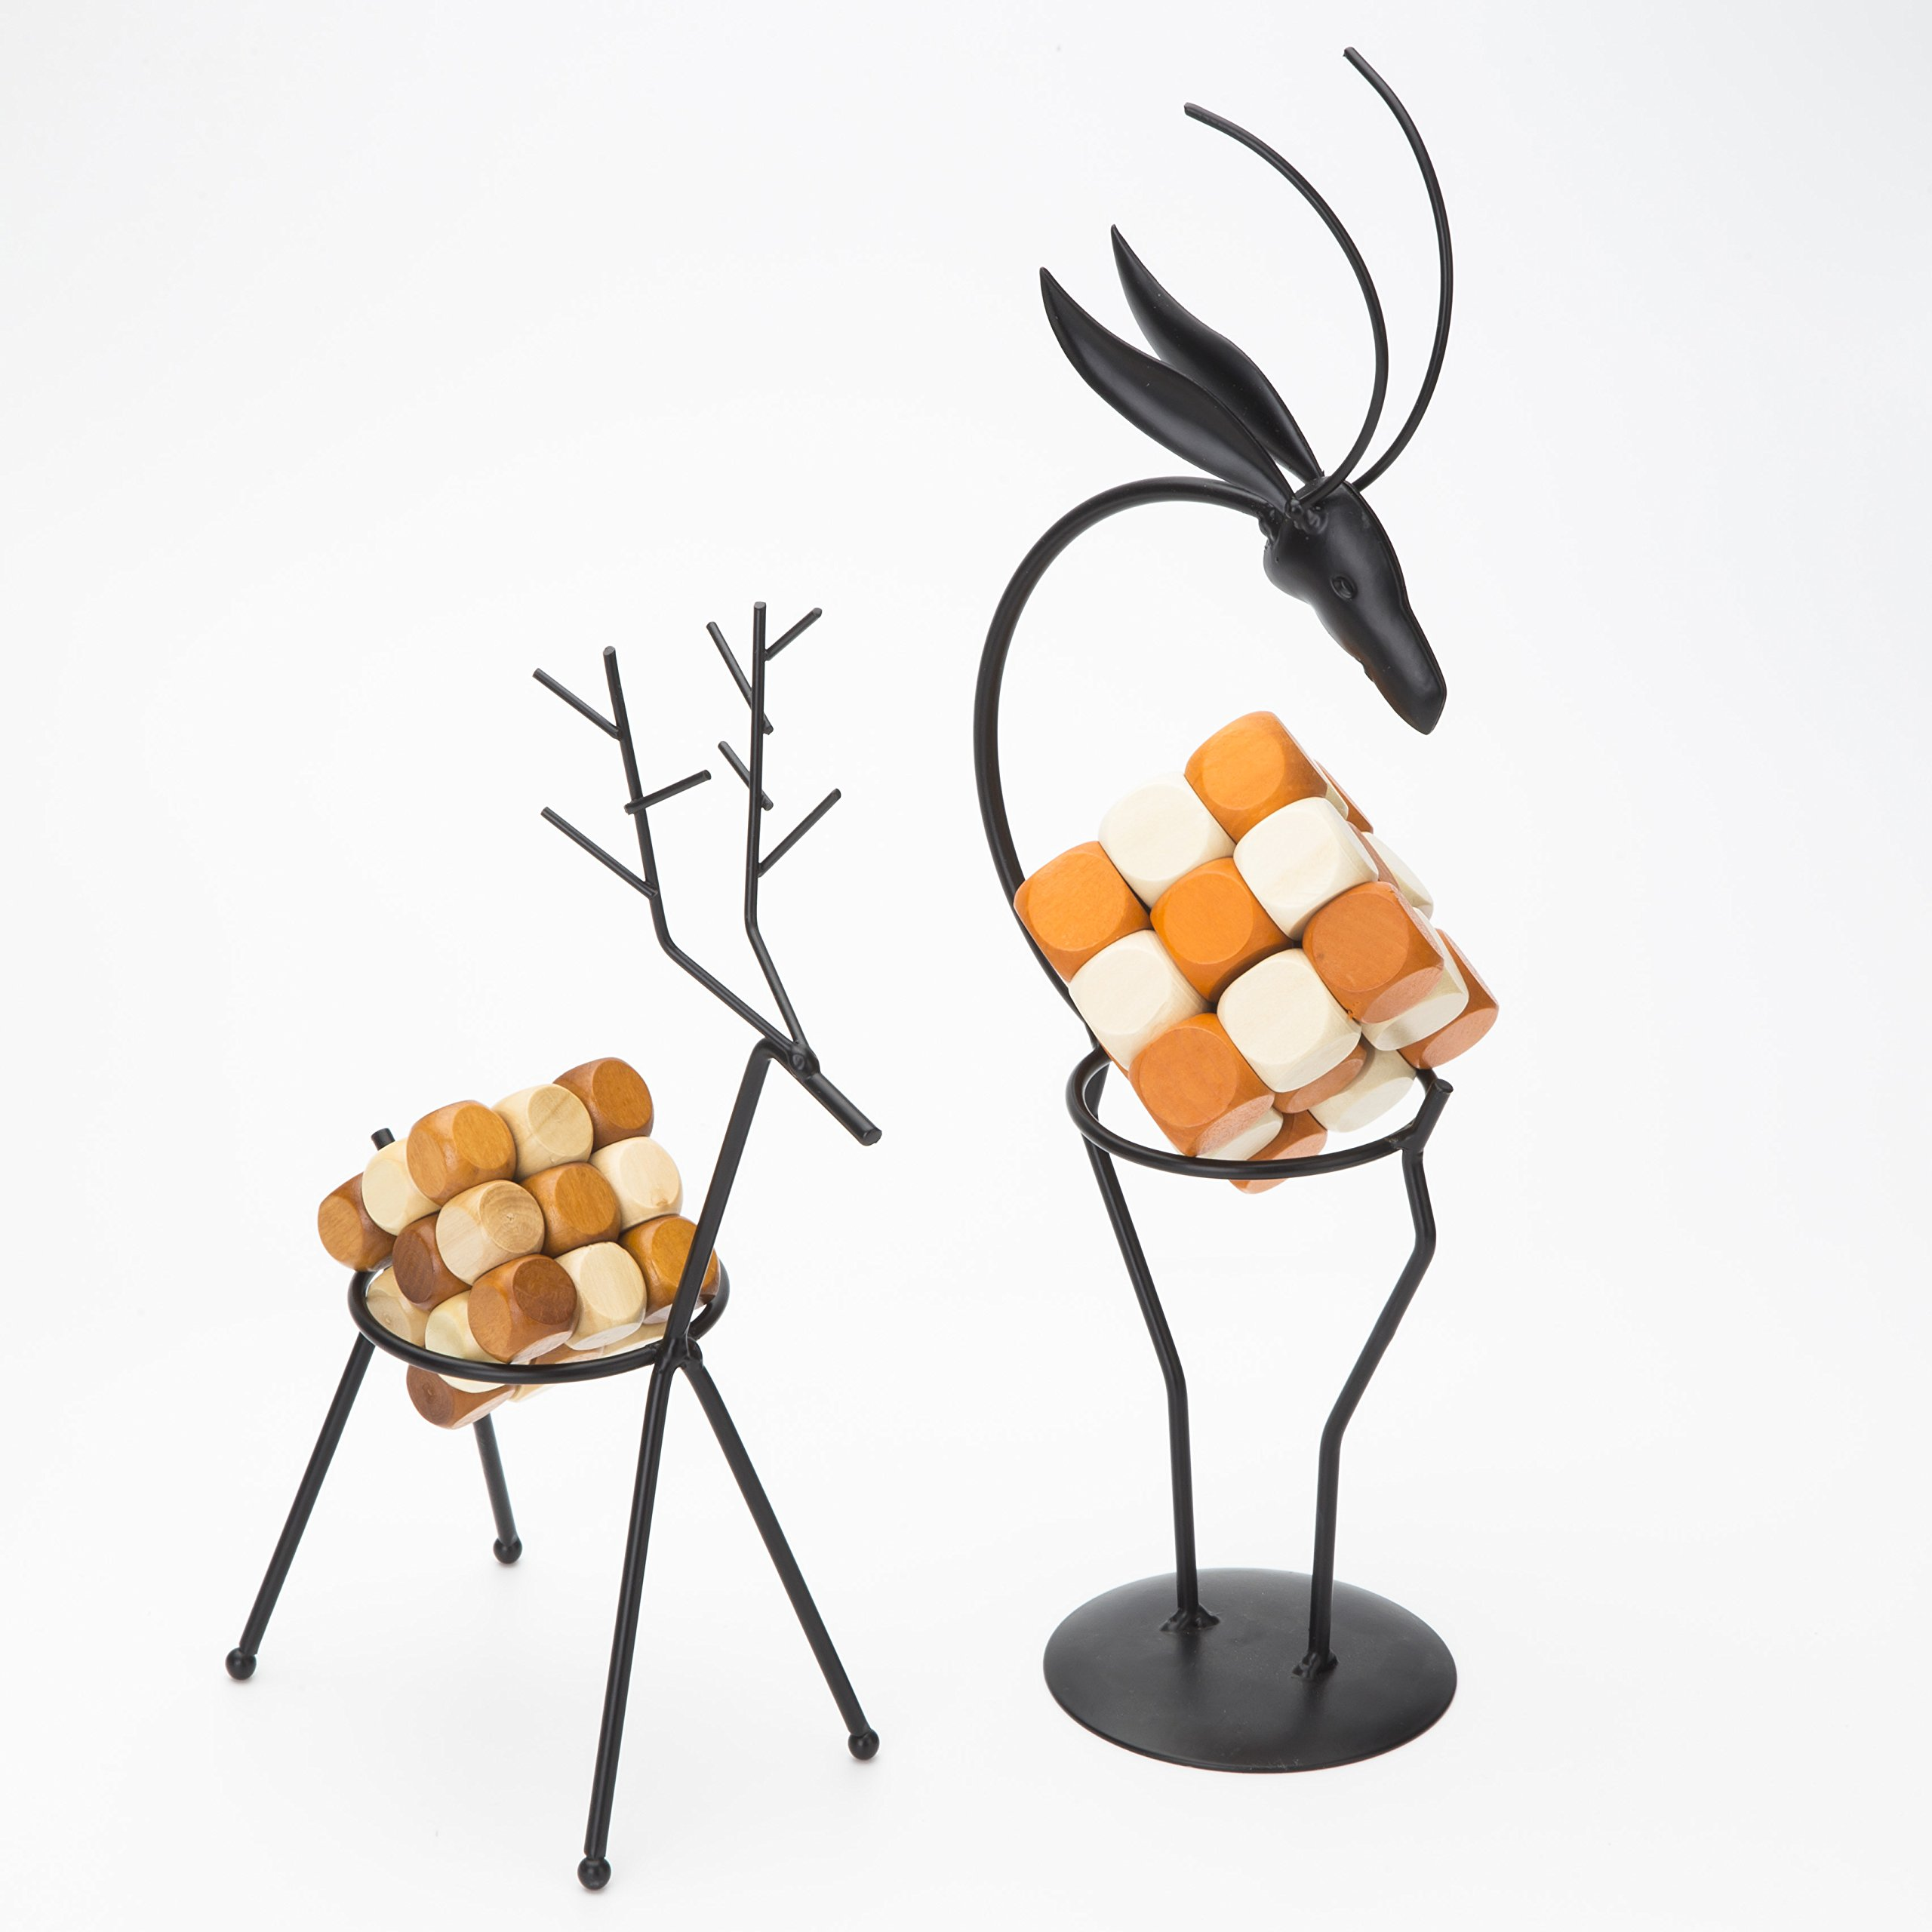 Metal Handicraft Stand Deer with European Elements Minimalist Design ,2 Pieces Deer and 2 Pieces ''Drgon Wagging Tail'' Brain Teaser Toys ,Best Gift for Kids/Adults by Like KongMing (Image #1)